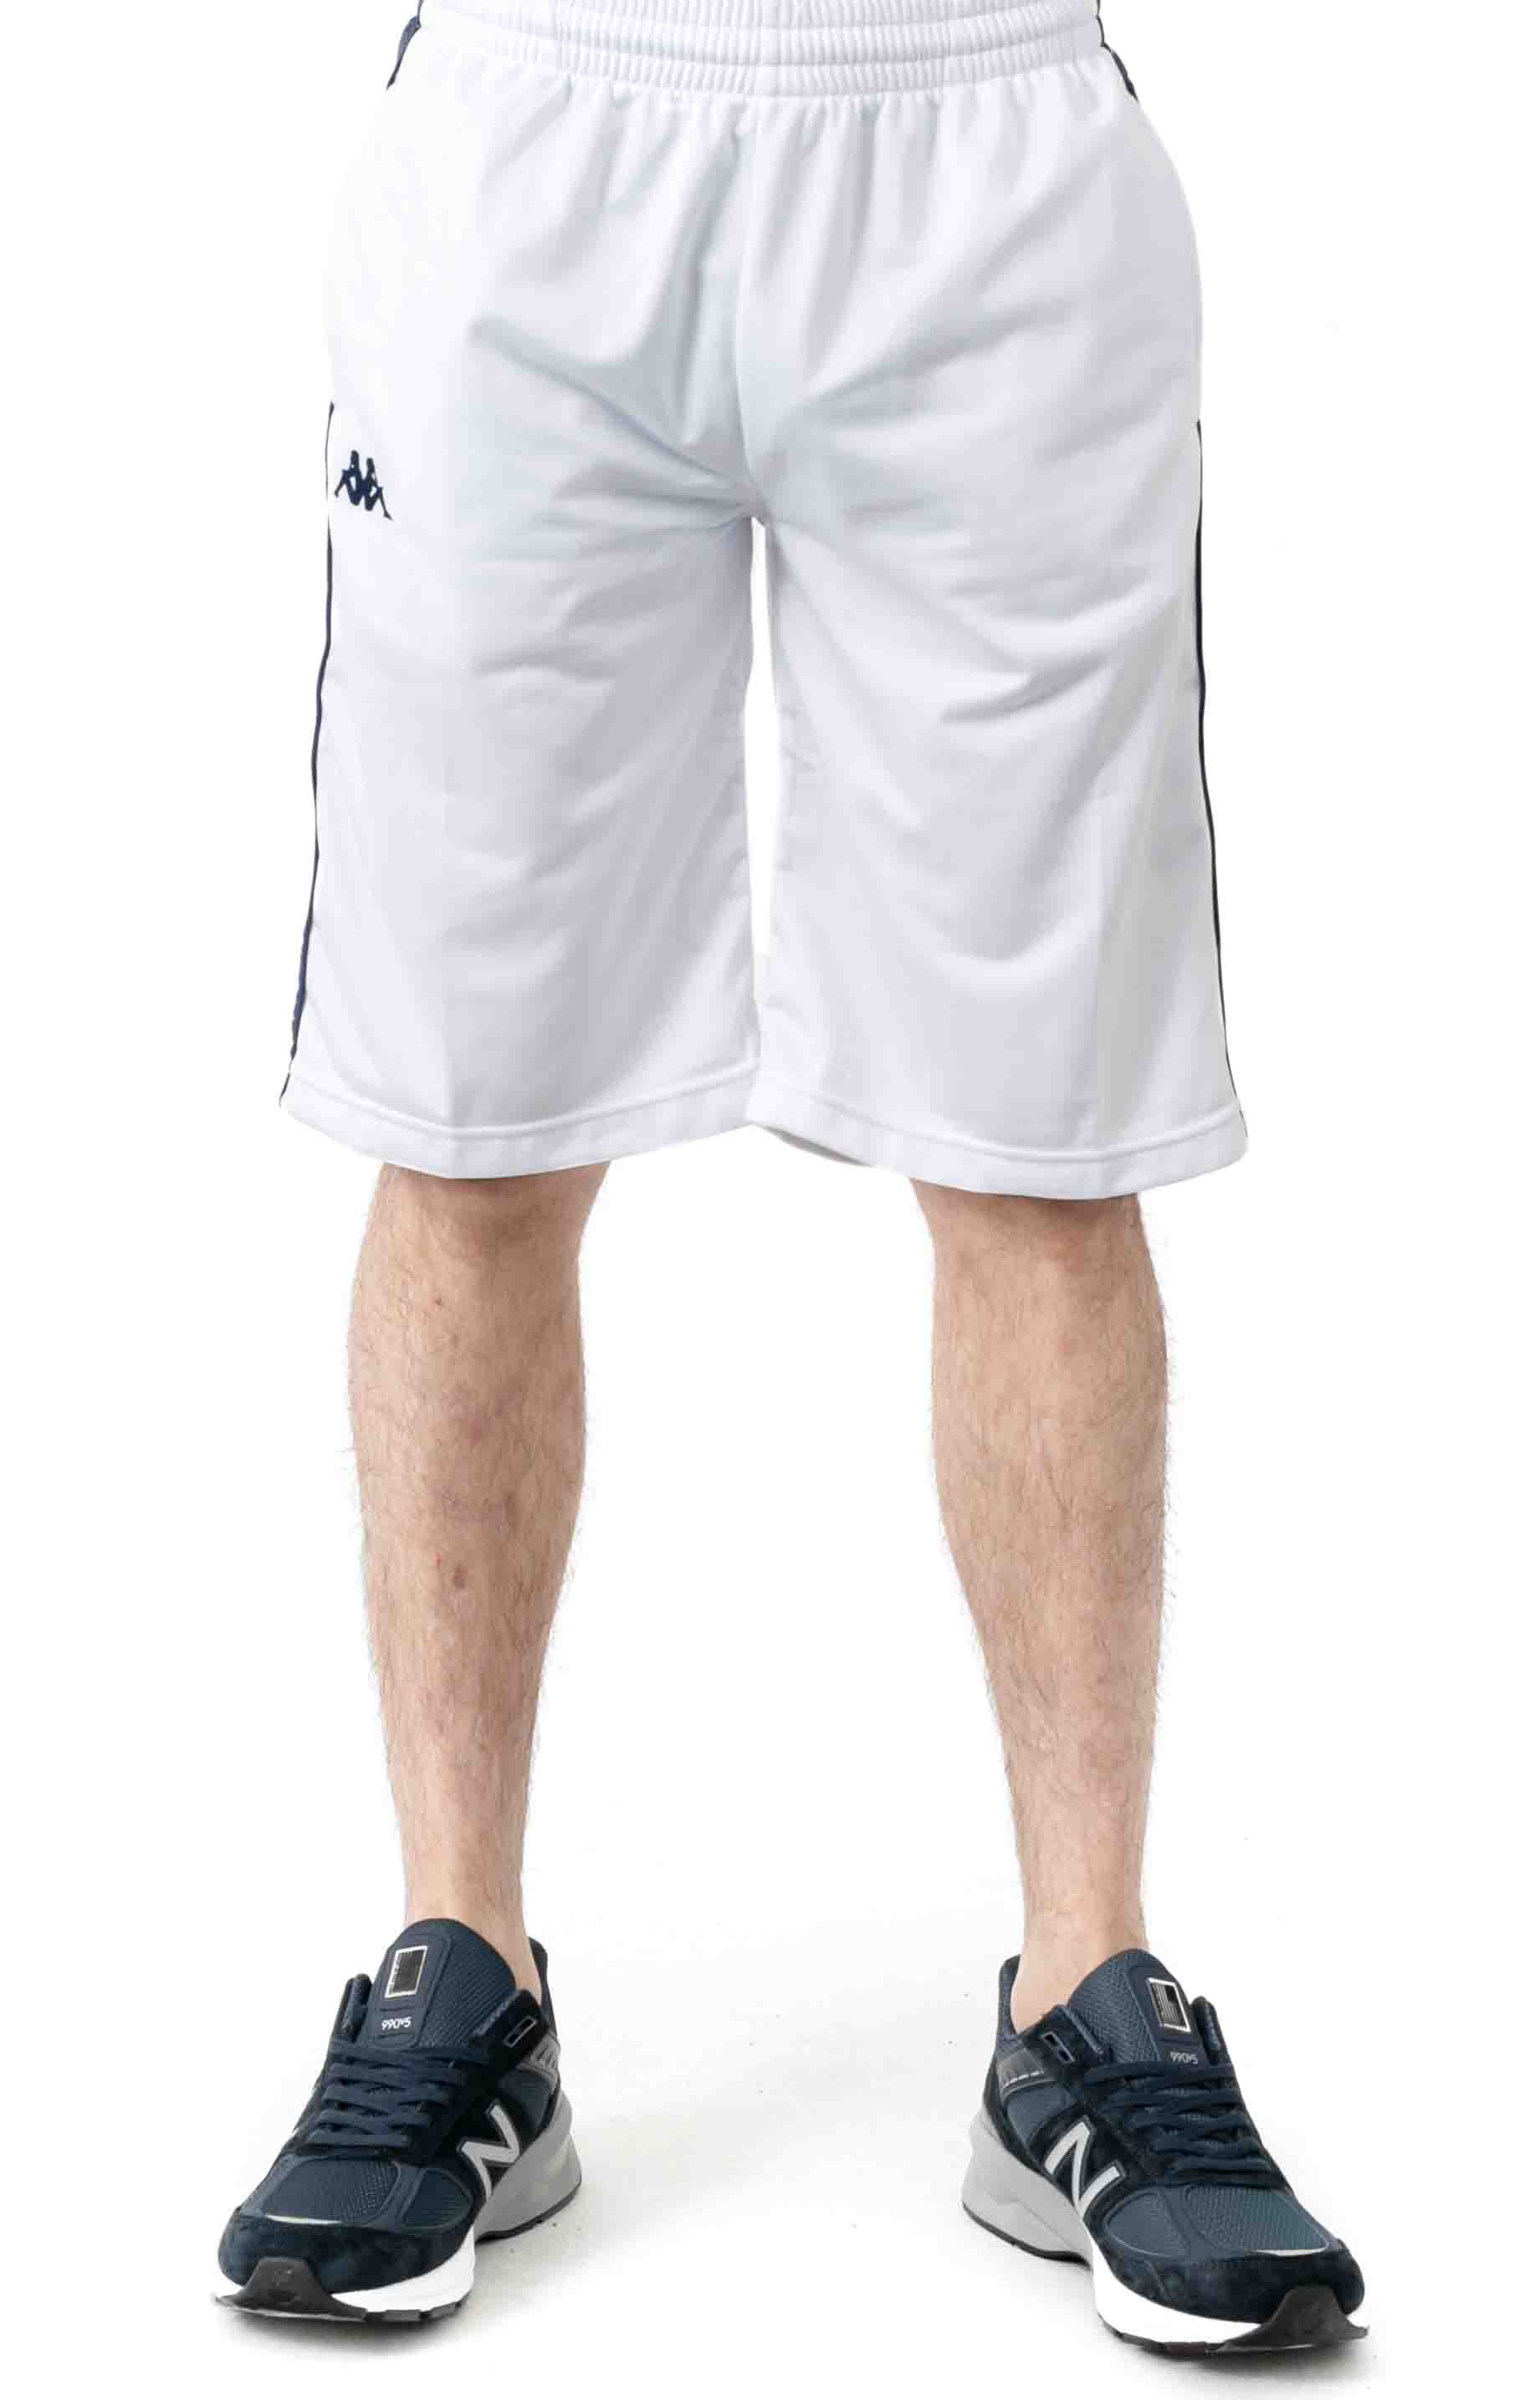 222 Banda Treadwellz Shorts - White/Blue Mid/Yellow 2